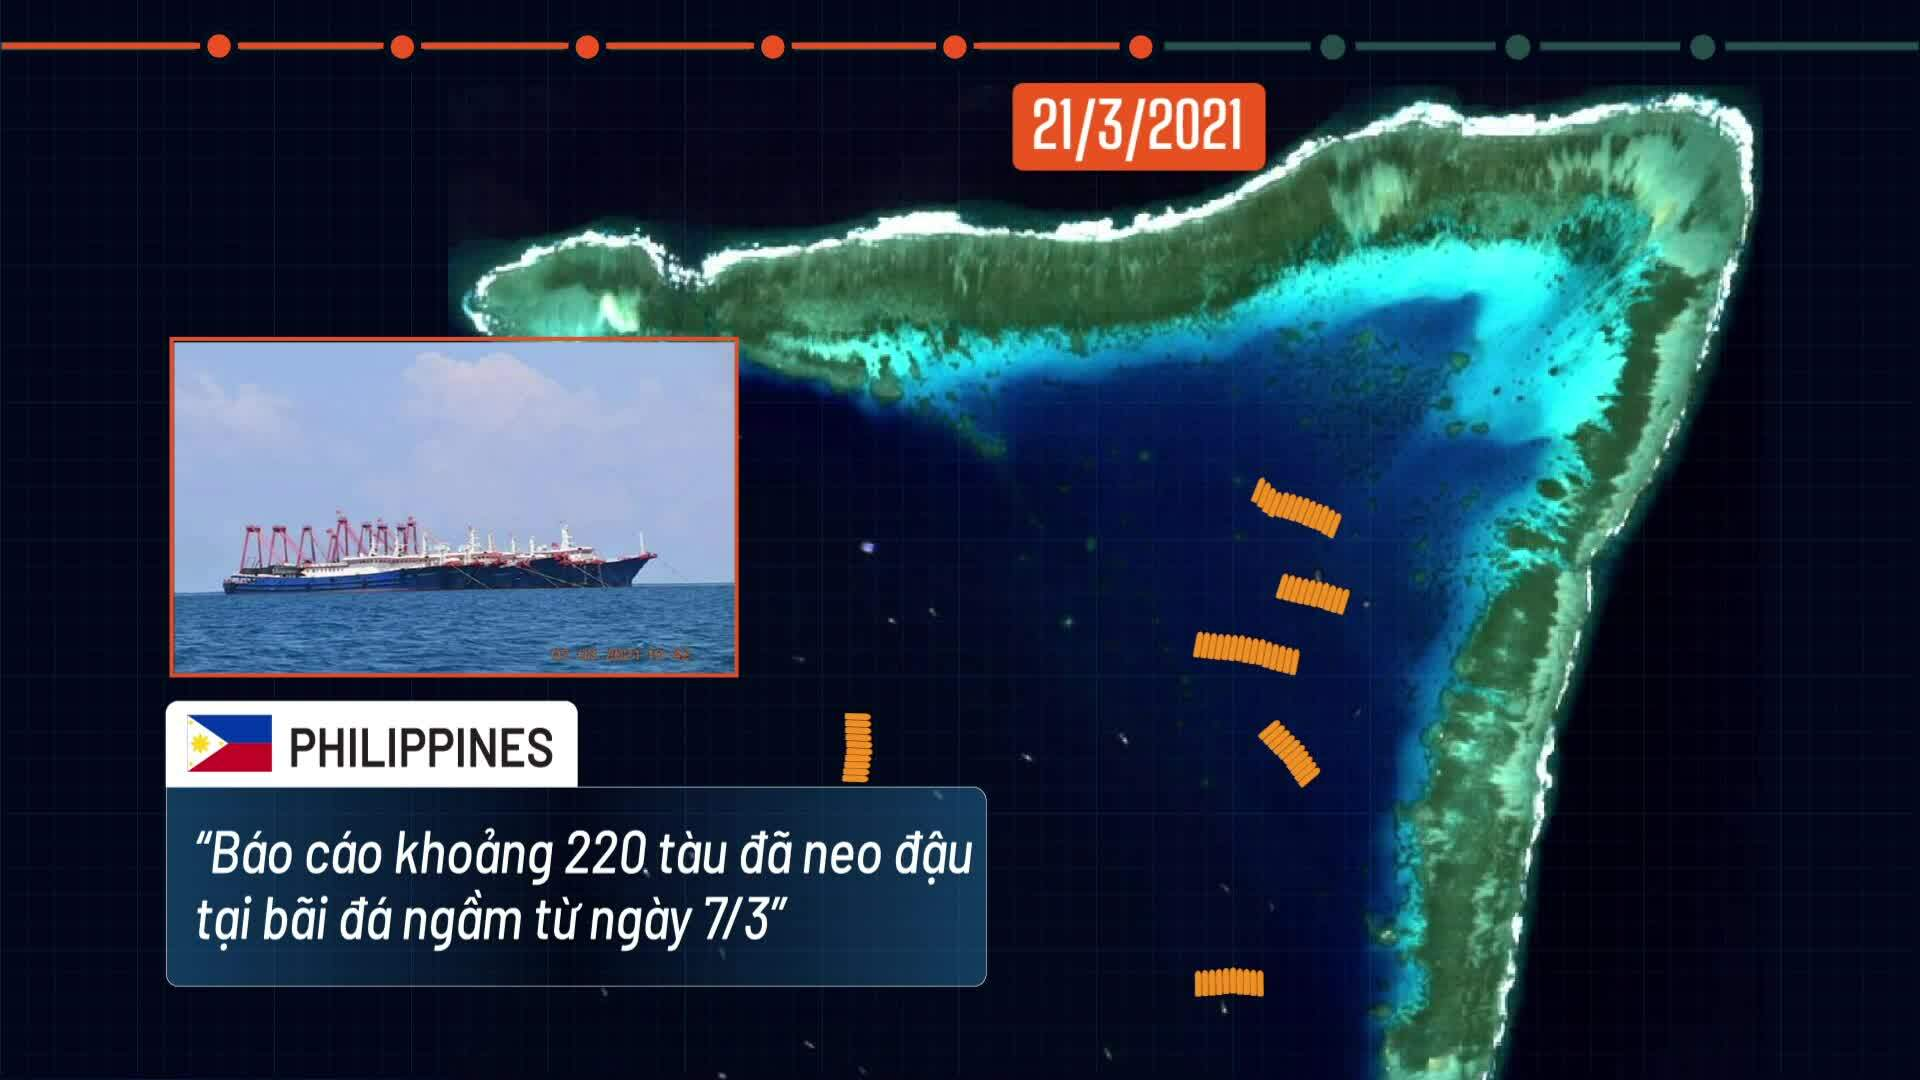 Three-week presence of more than 200 Chinese fishing vessels in the South China Sea